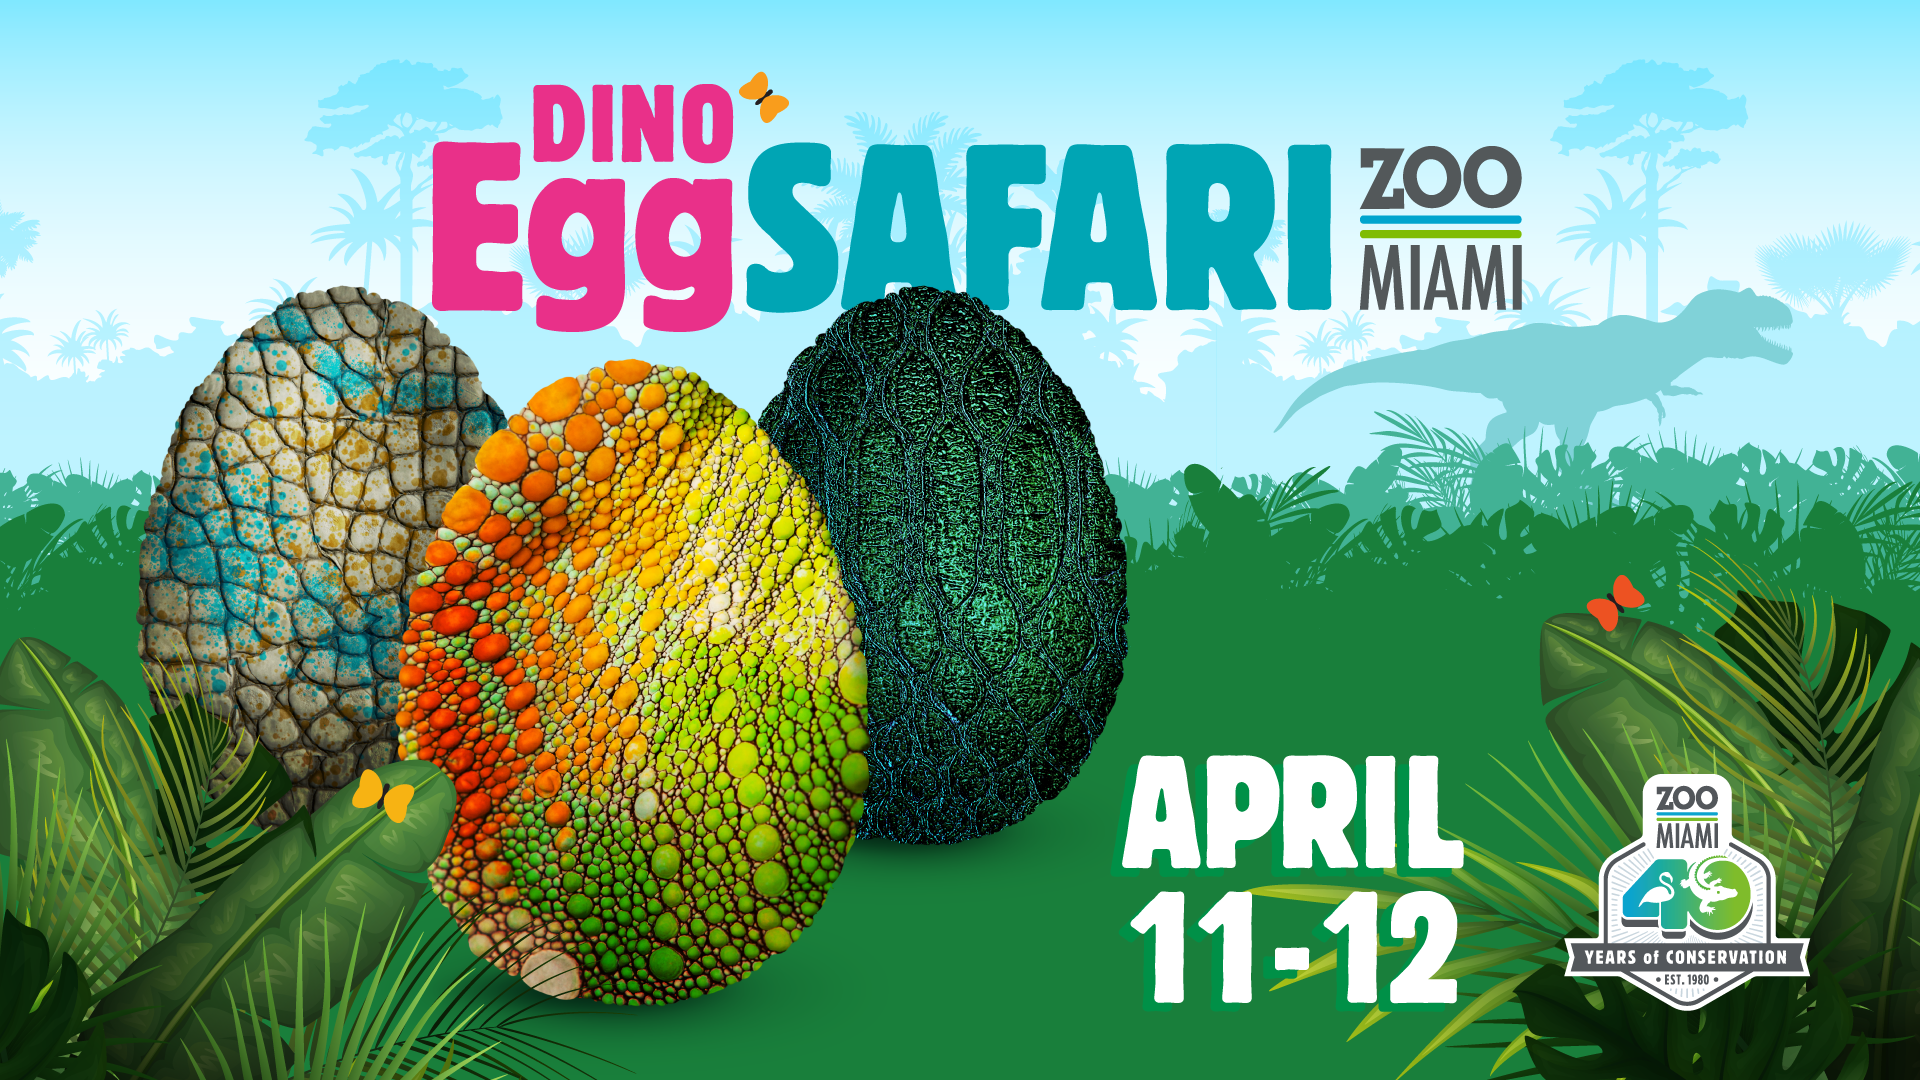 Dino Egg Safari image